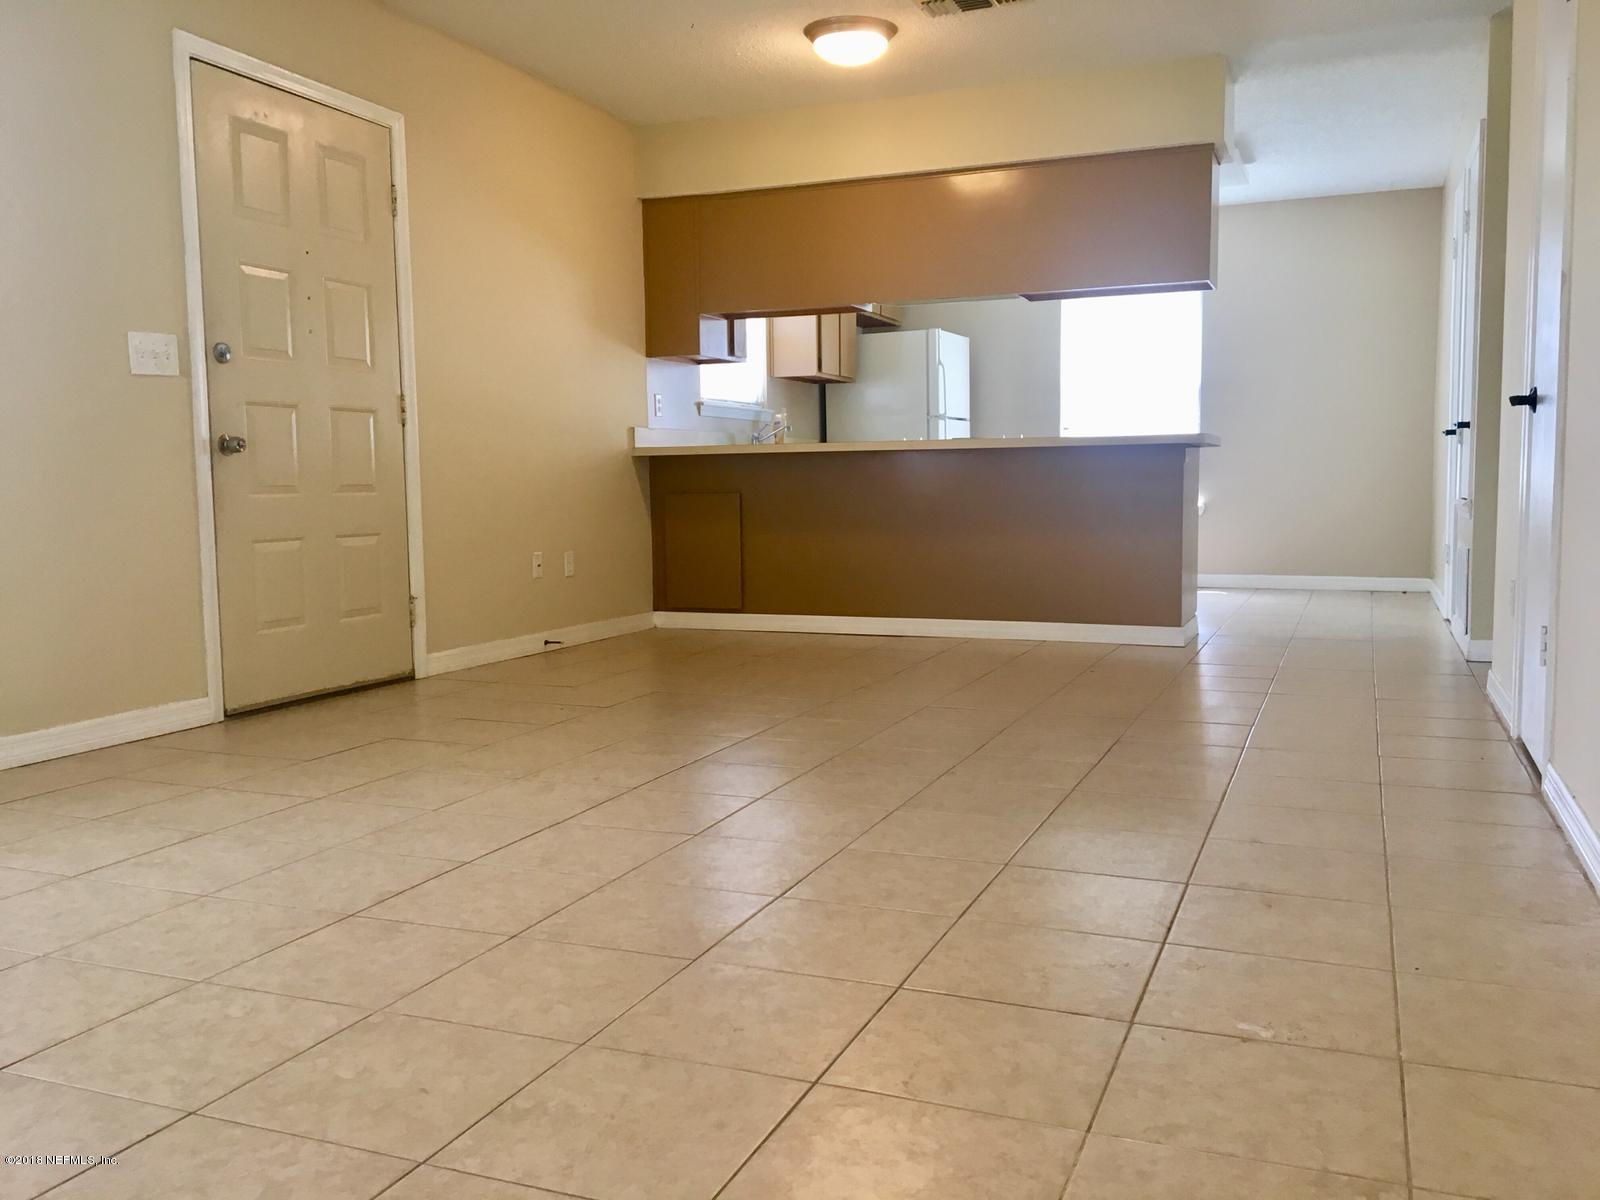 2745 CAVENDER, JACKSONVILLE, FLORIDA 32216, 2 Bedrooms Bedrooms, ,1 BathroomBathrooms,Residential - single family,For sale,CAVENDER,962835